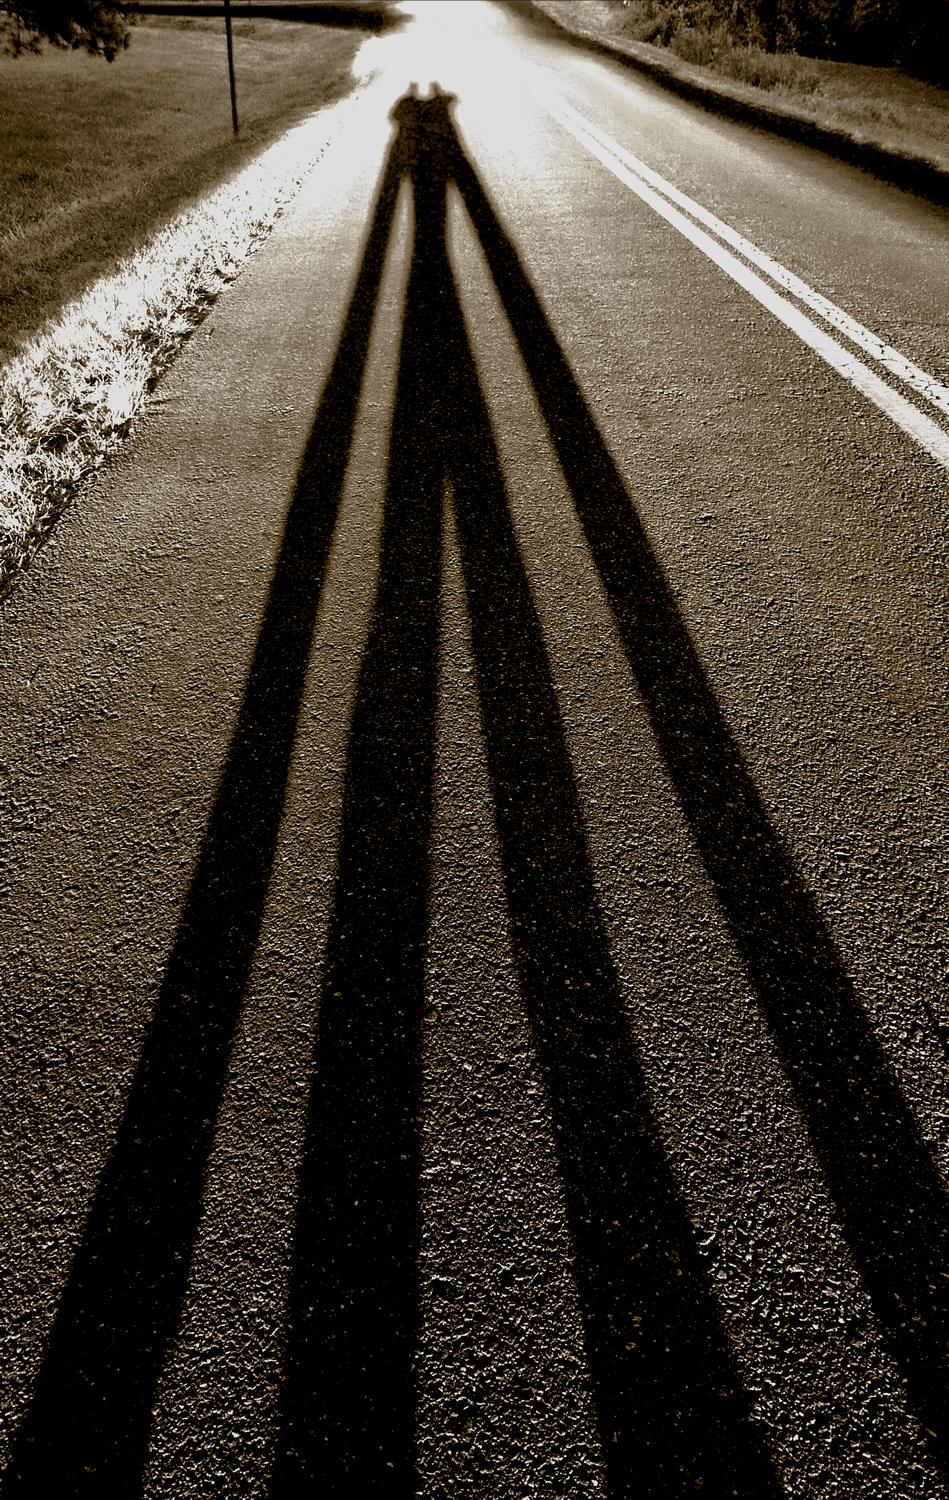 long shadows on the road - The artist and his muse intertwined on the road - Panasonic DMC-FZ28 - Tony Karp, design, art, photography, techno-impressionist, techno-impressionism, aerial photography , drone , drones , dji , mavic pro , video , 3D printing - Books -